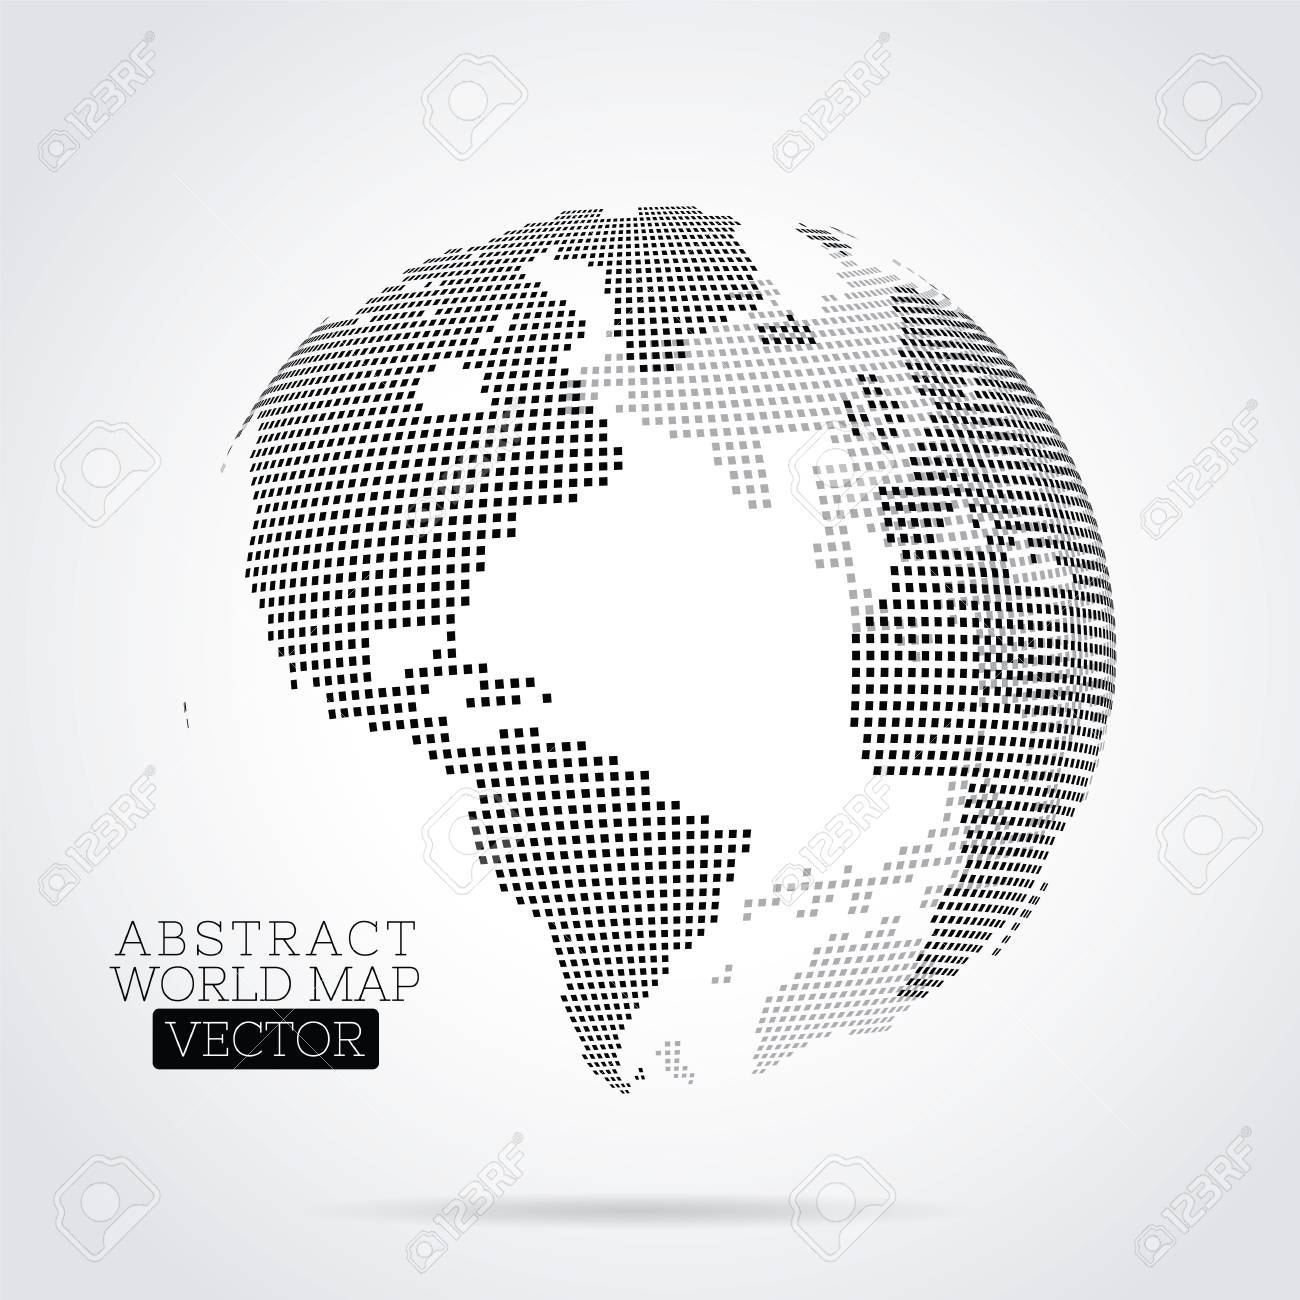 Pixel world map made from small squares royalty free cliparts pixel world map made from small squares stock vector 91822209 gumiabroncs Image collections